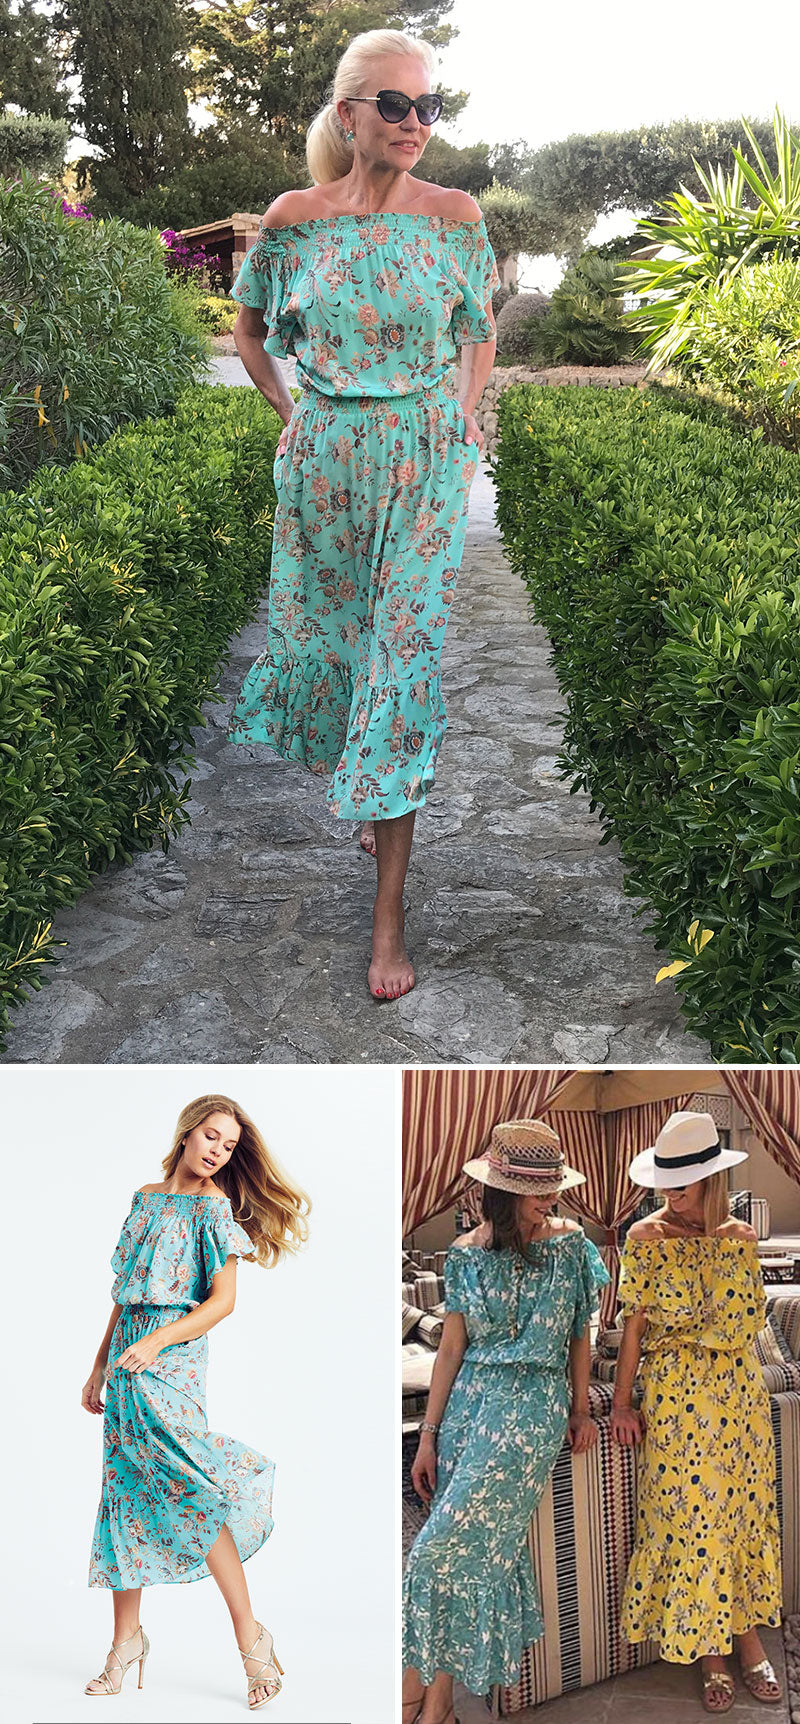 ridleylondon-luxury-bespoke-tropical-printed-silk-holiday-dress